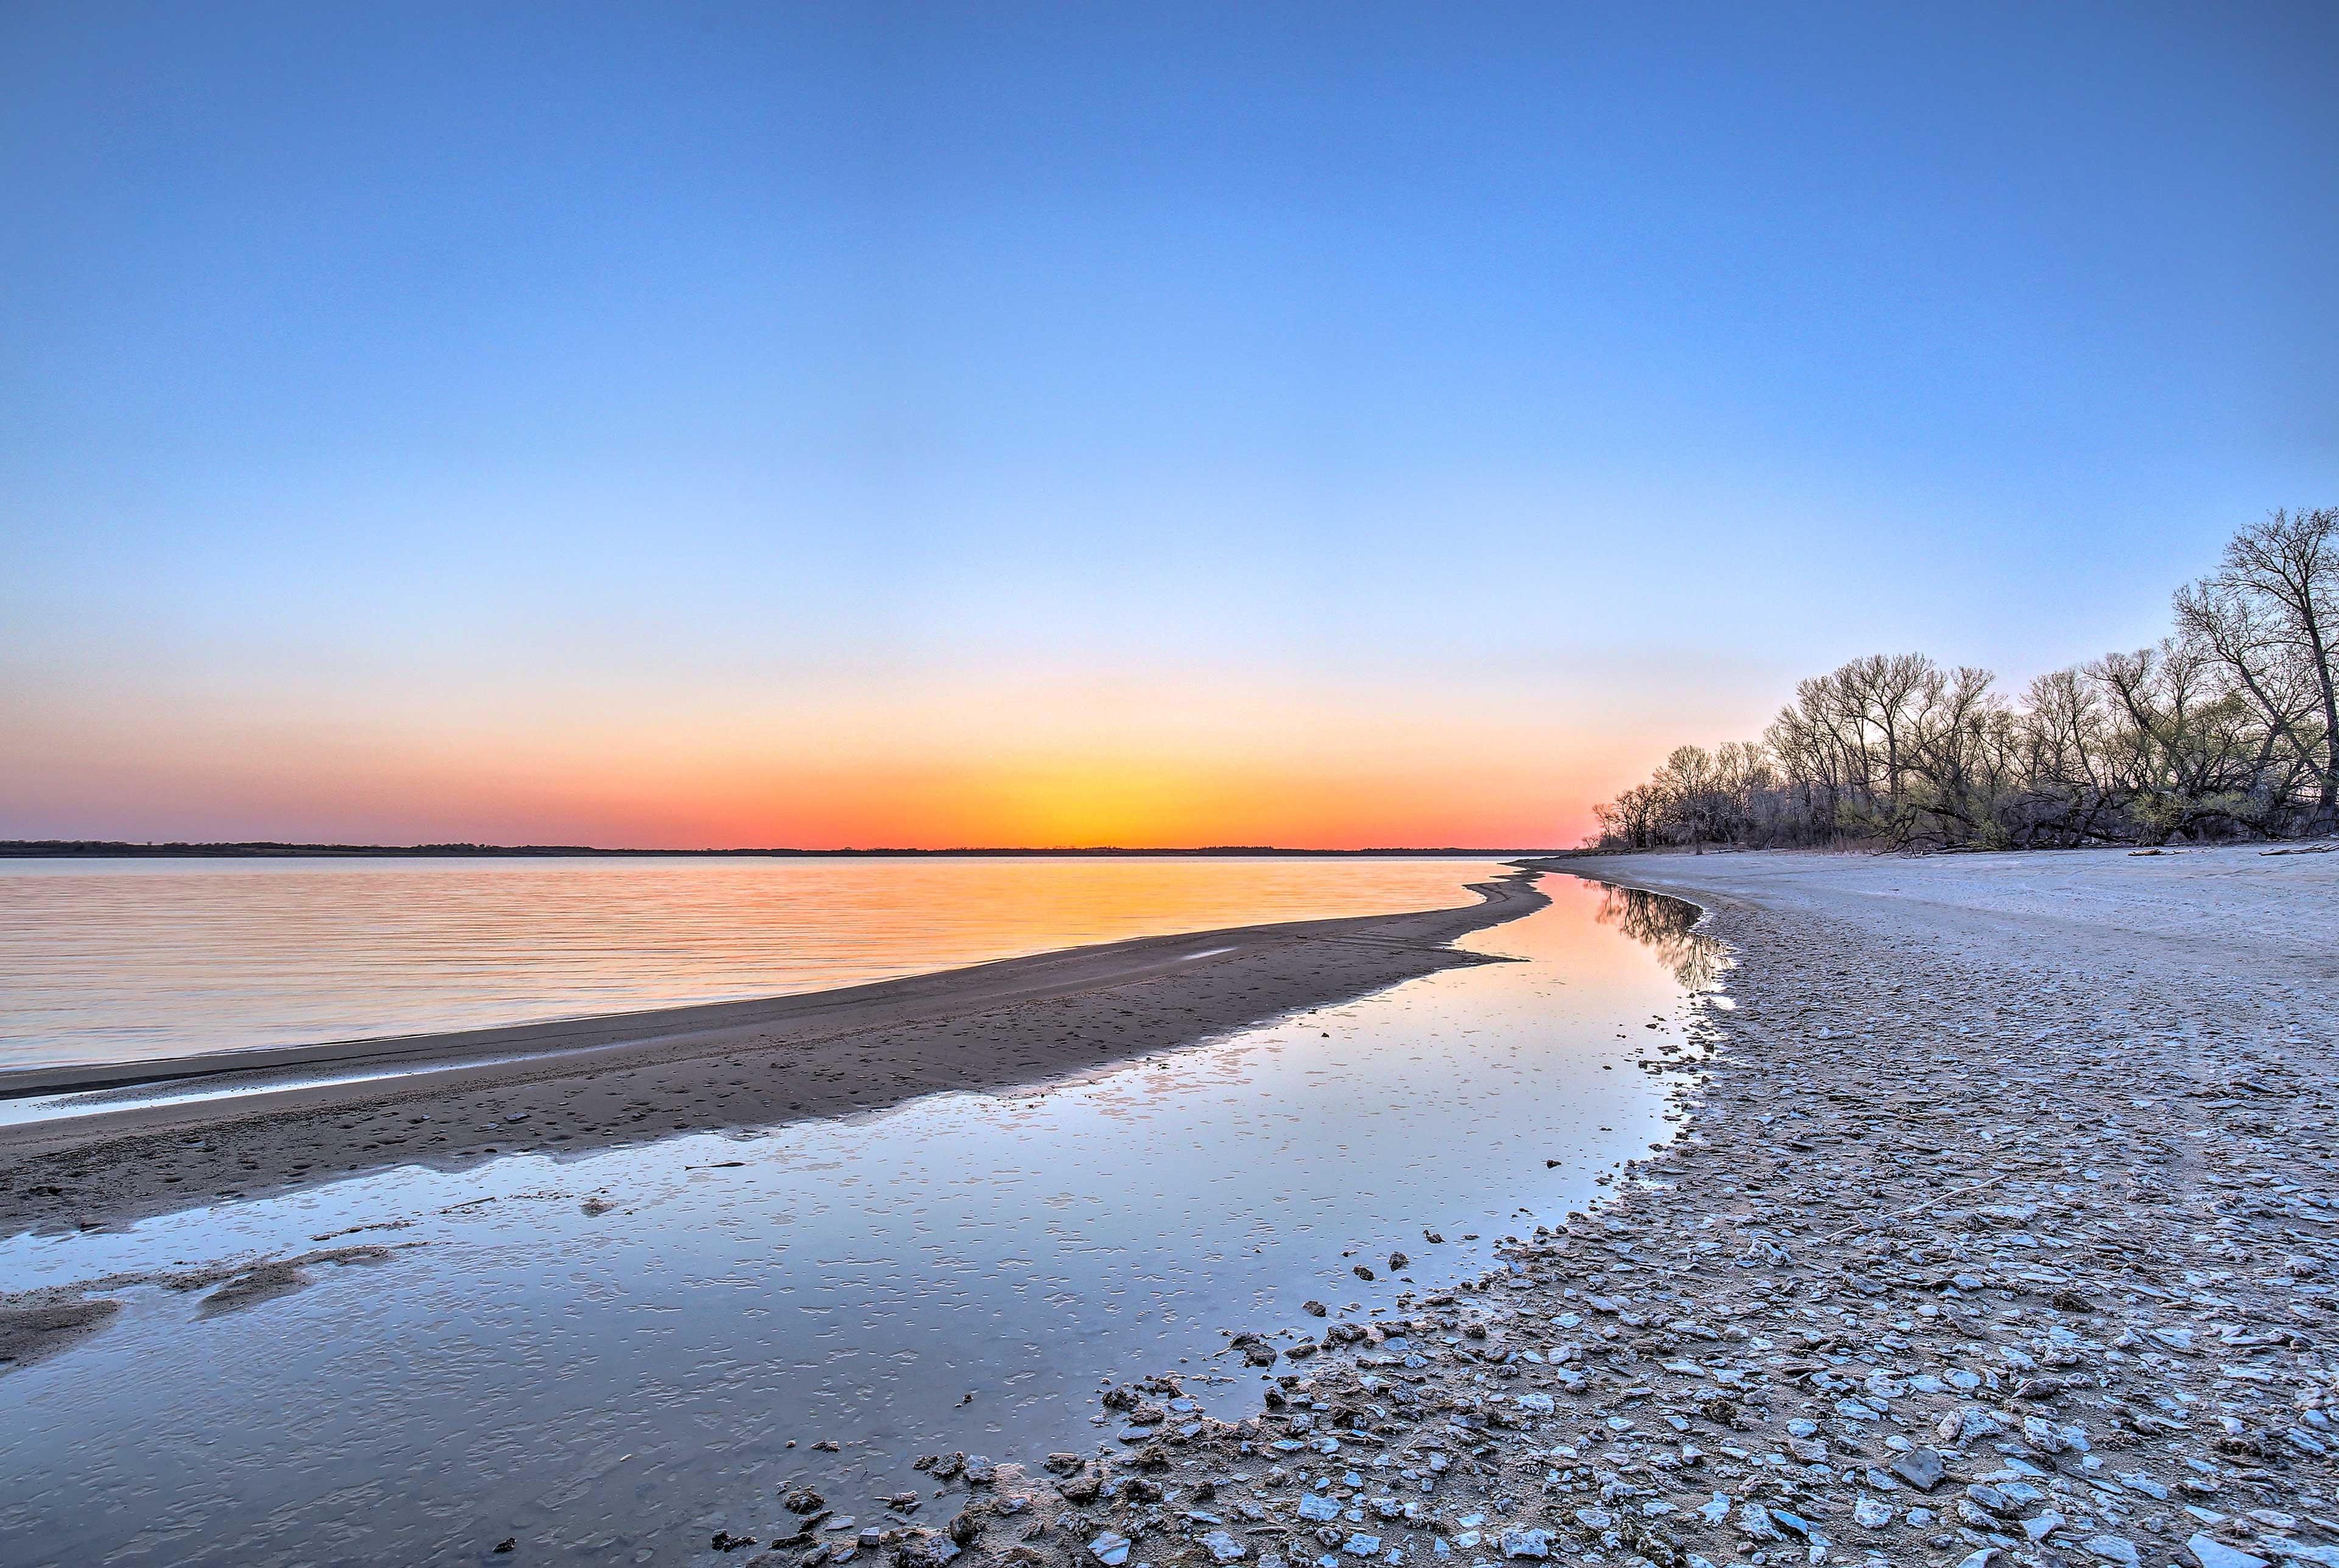 Walk down to the sandy shores of the beautiful beach on Milford Lake.